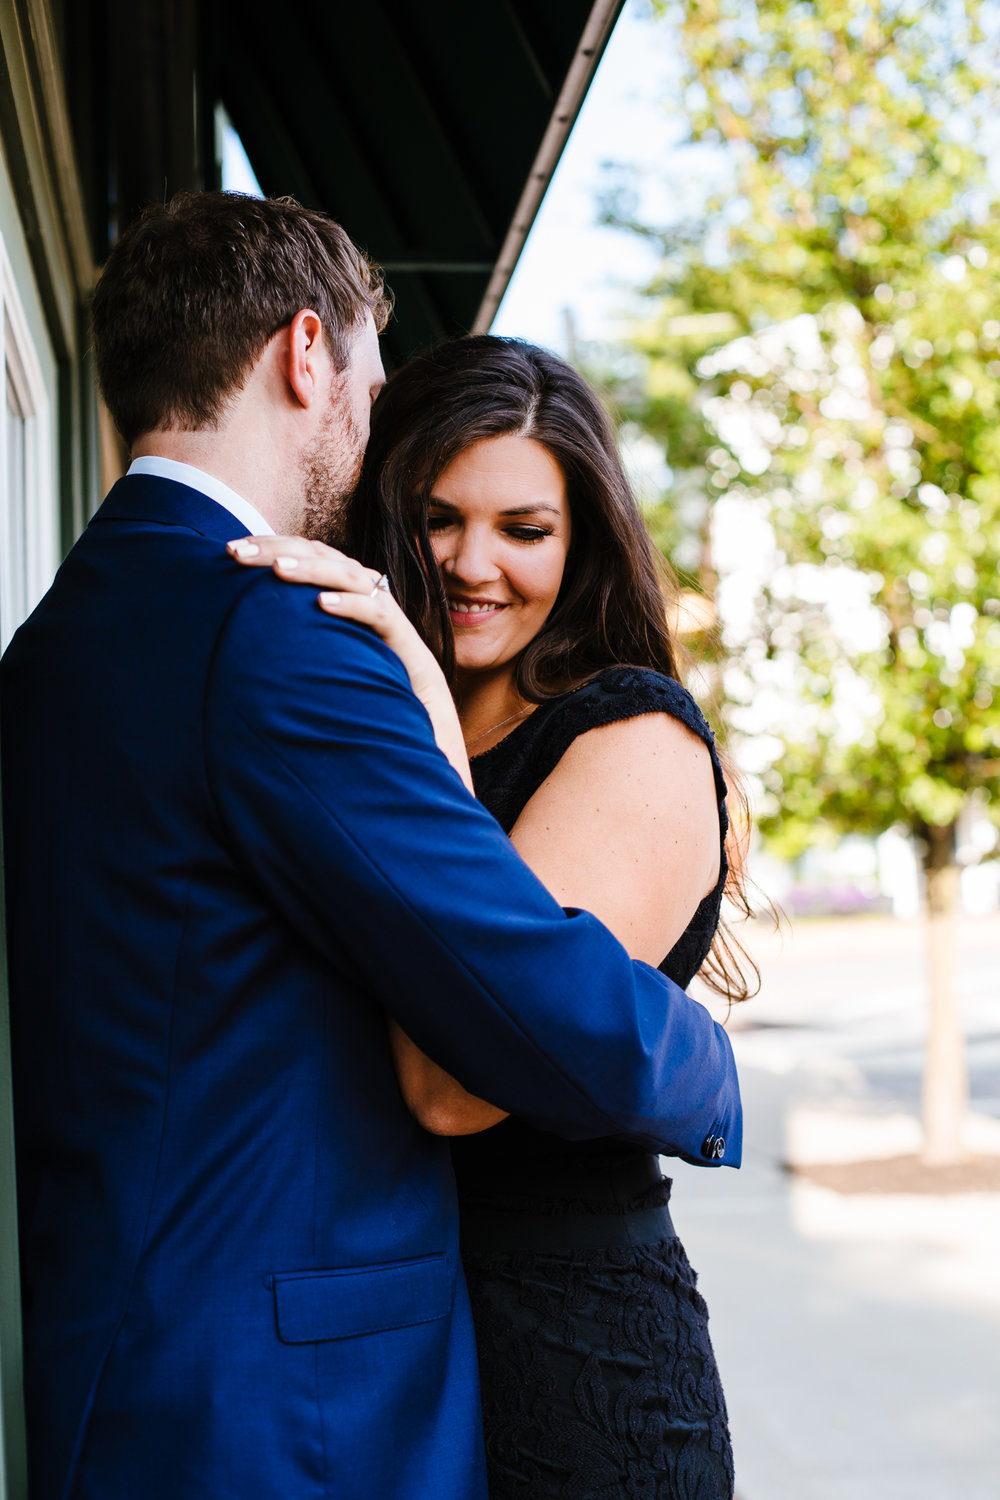 Woman in a black dress snuggles up to man in a blue suit.